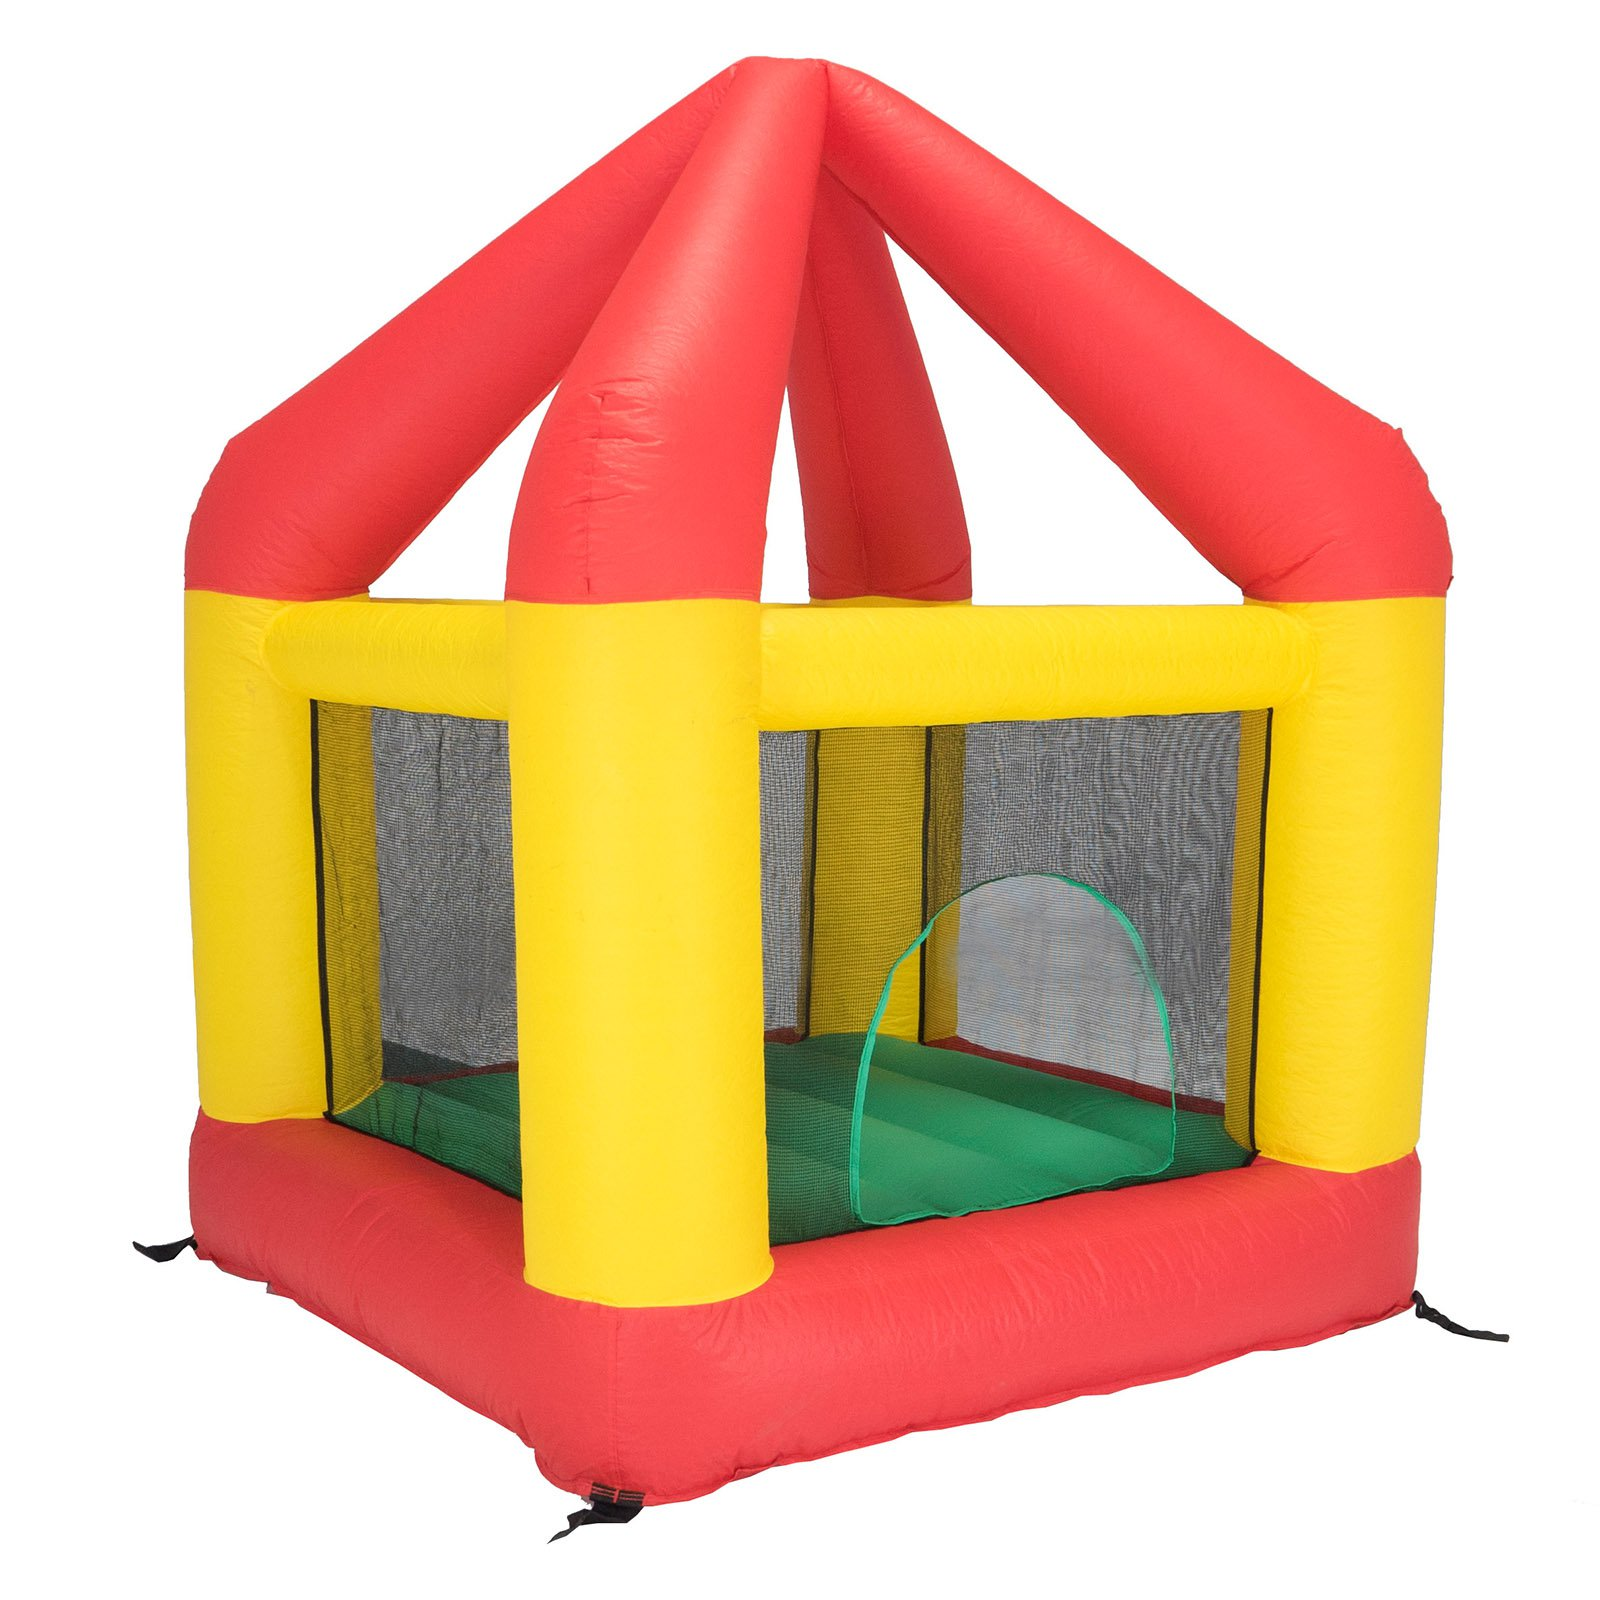 Bazoongi 6.25' x 6' Bounce House with Open Roof (without Cover)